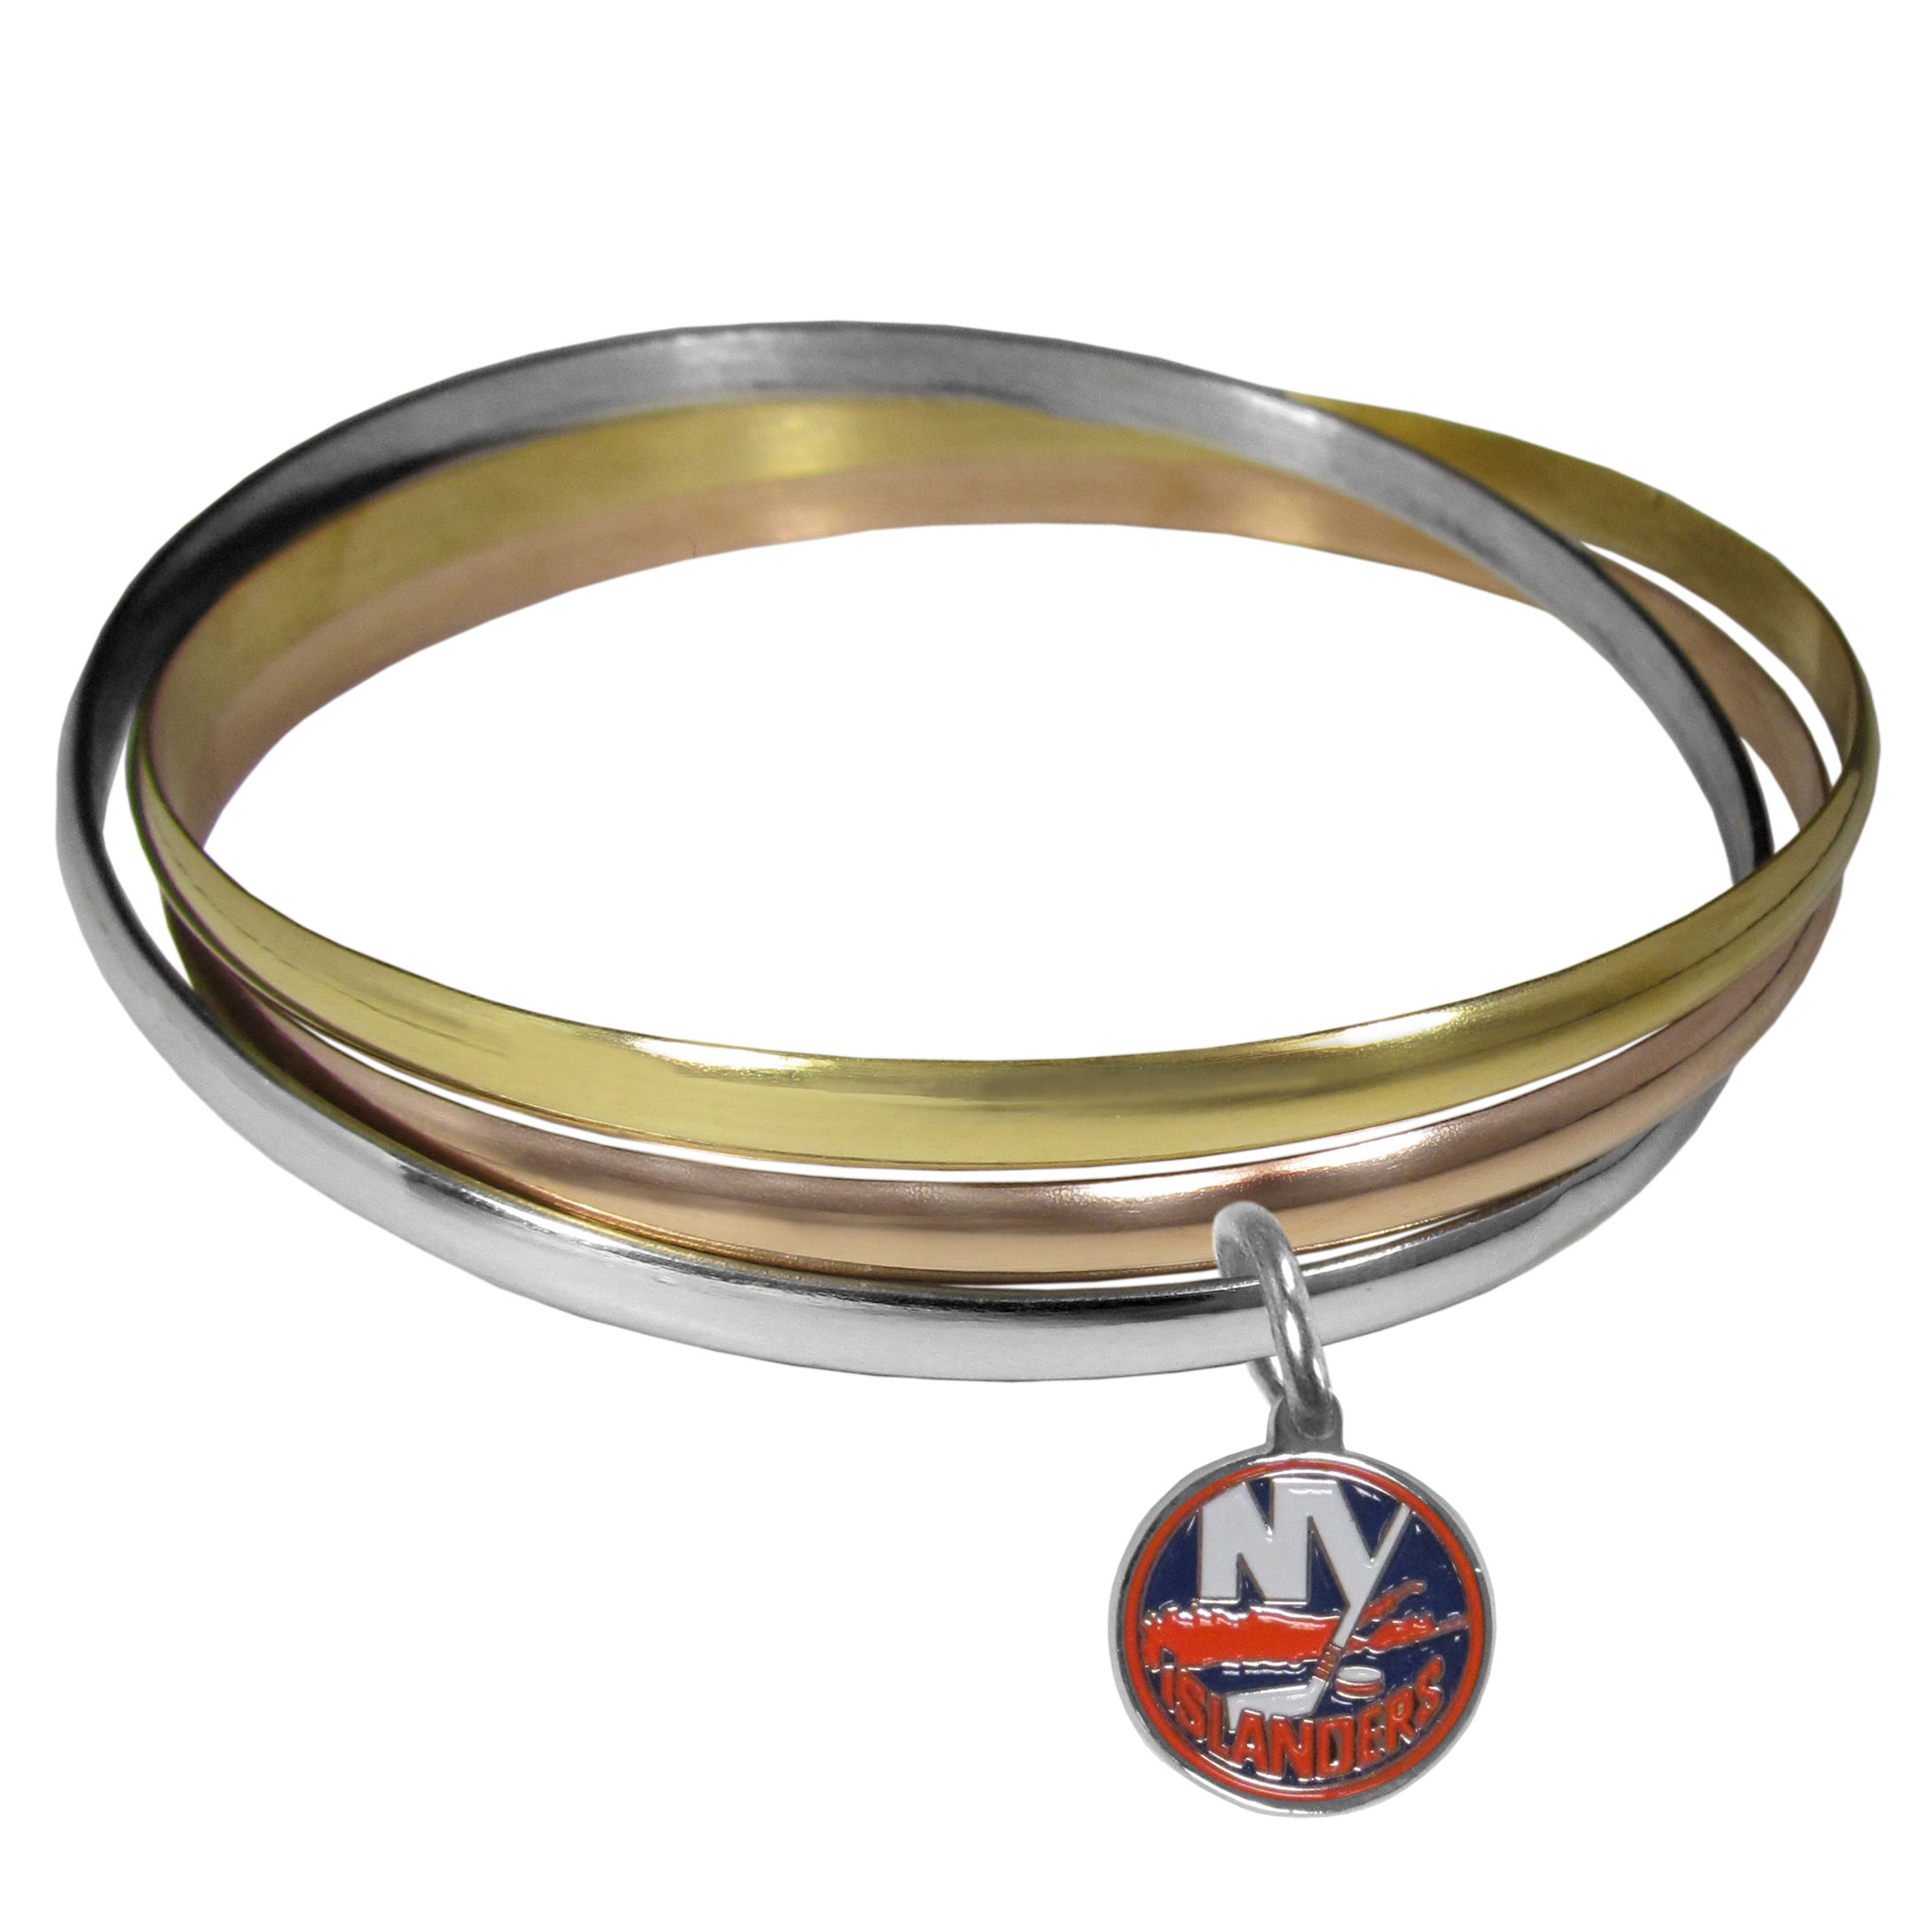 New York Islanders® Tri-color Bangle Bracelet - These beautiful bangles come in a interlocking style and feature a fully cast New York Islanders® charm with enameled team colors. The bracelet has a silver toned bangle, gold tone bangle and brass toned bangle.